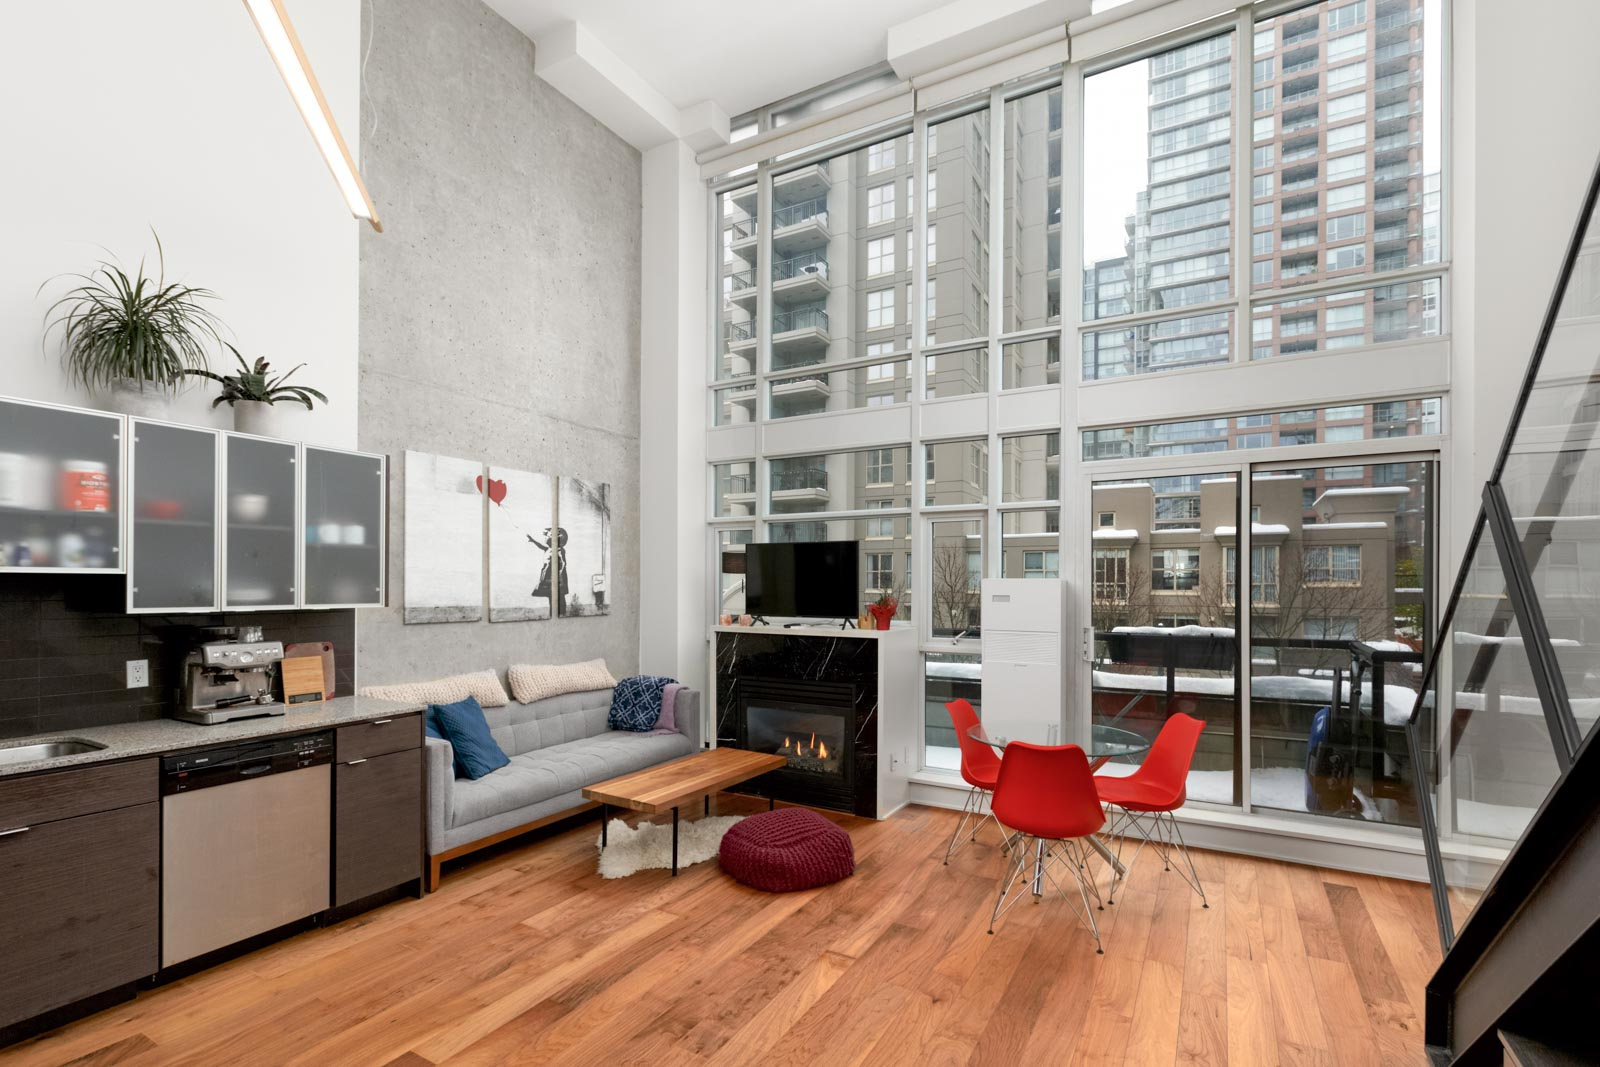 living room of condo with hardwood floors kitchen on left and floor to ceiling windows on right with view to buildings across the street